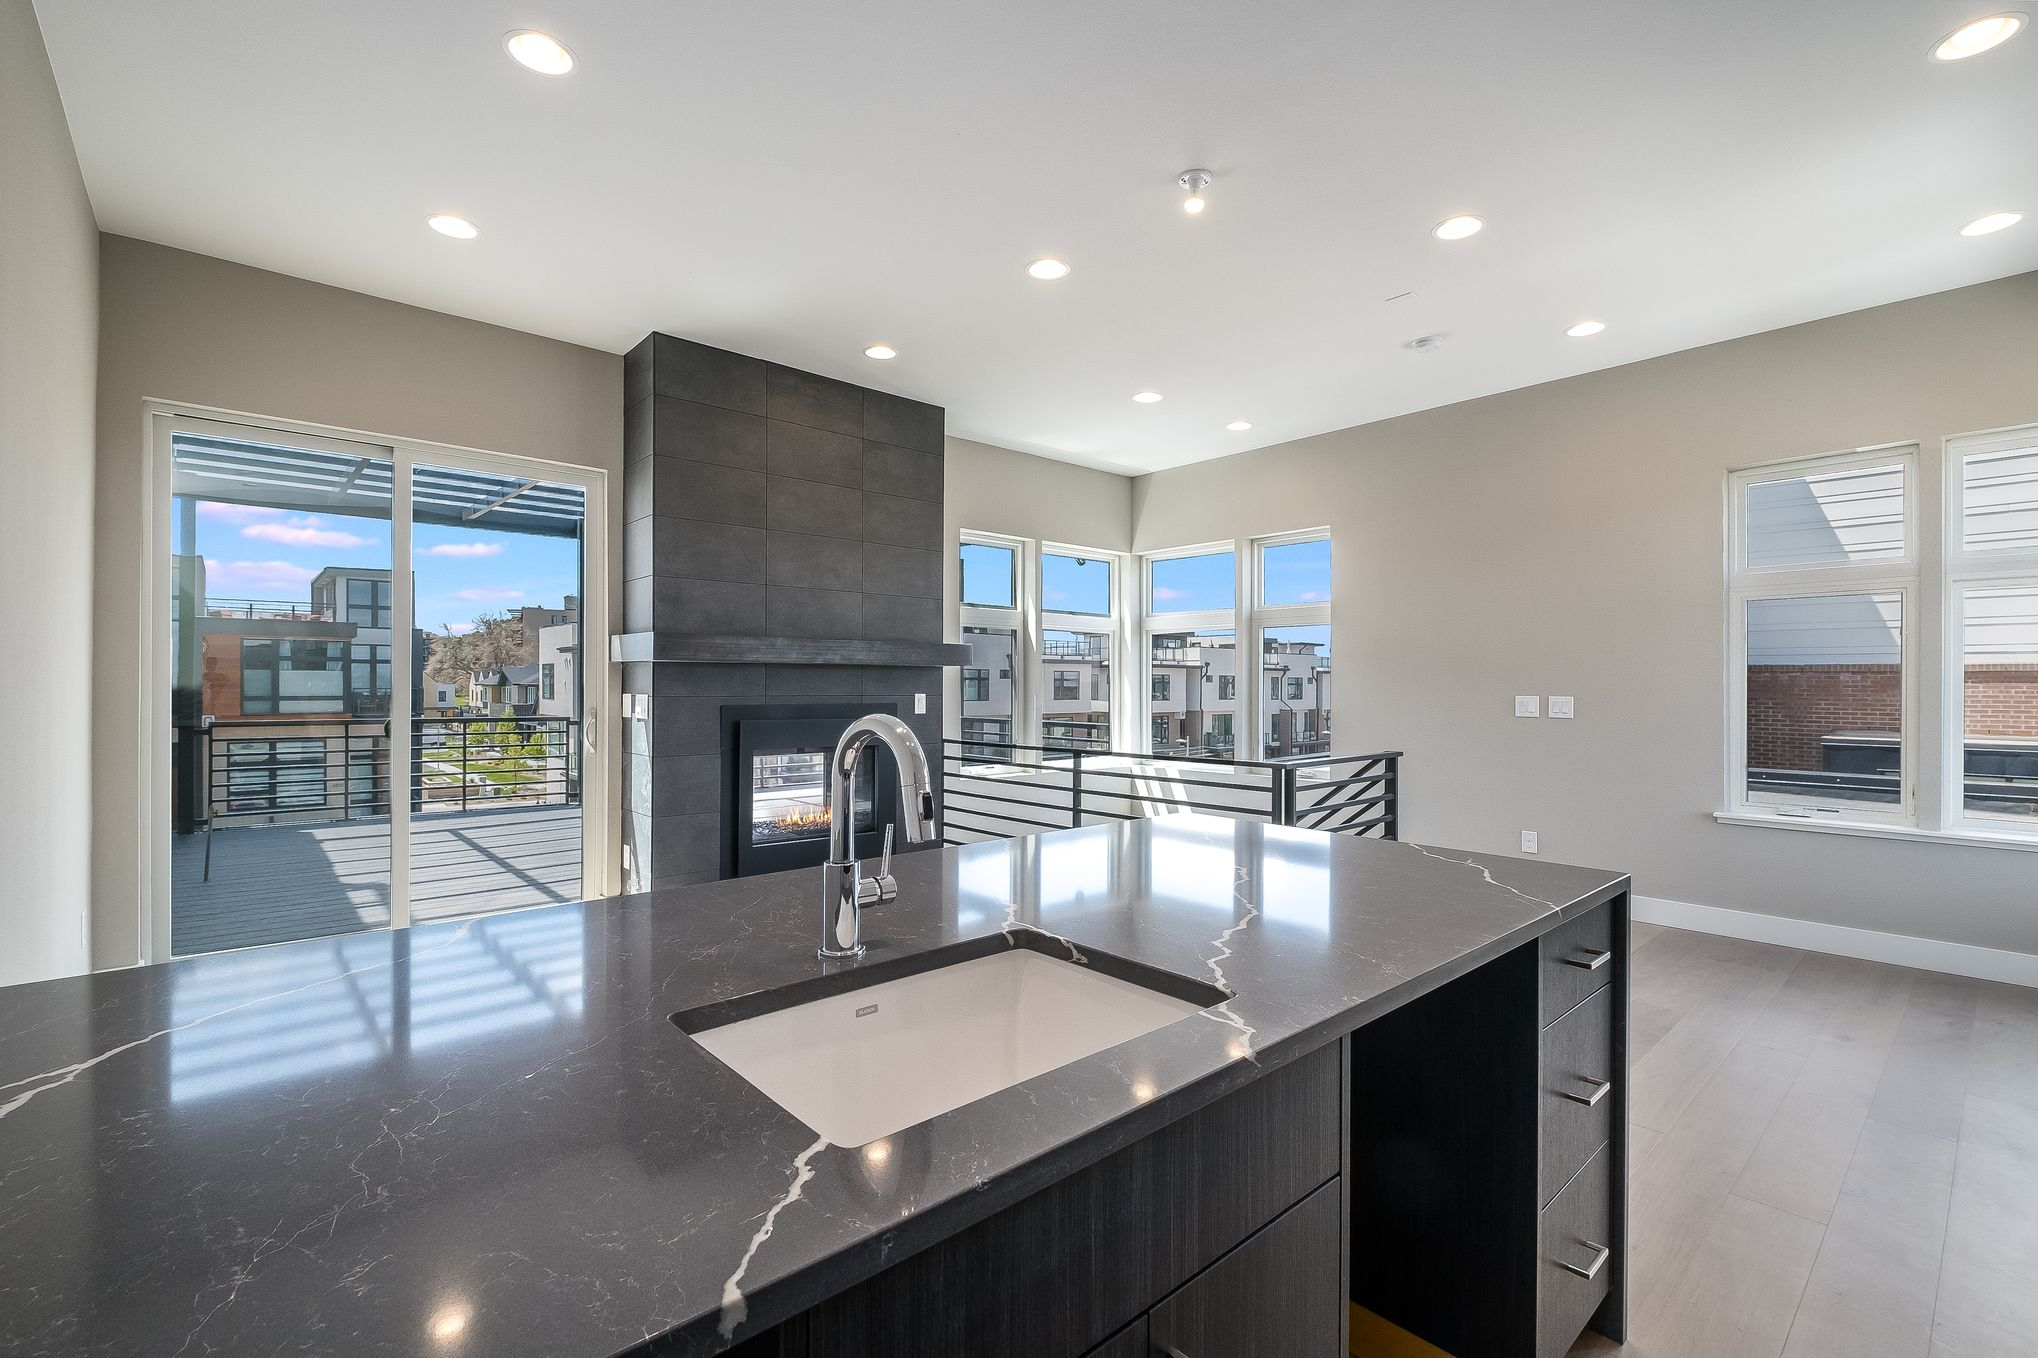 Kitchen featured in the Atlas - Main Floor Master End Unit By Koelbel Urban Homes in Denver, CO